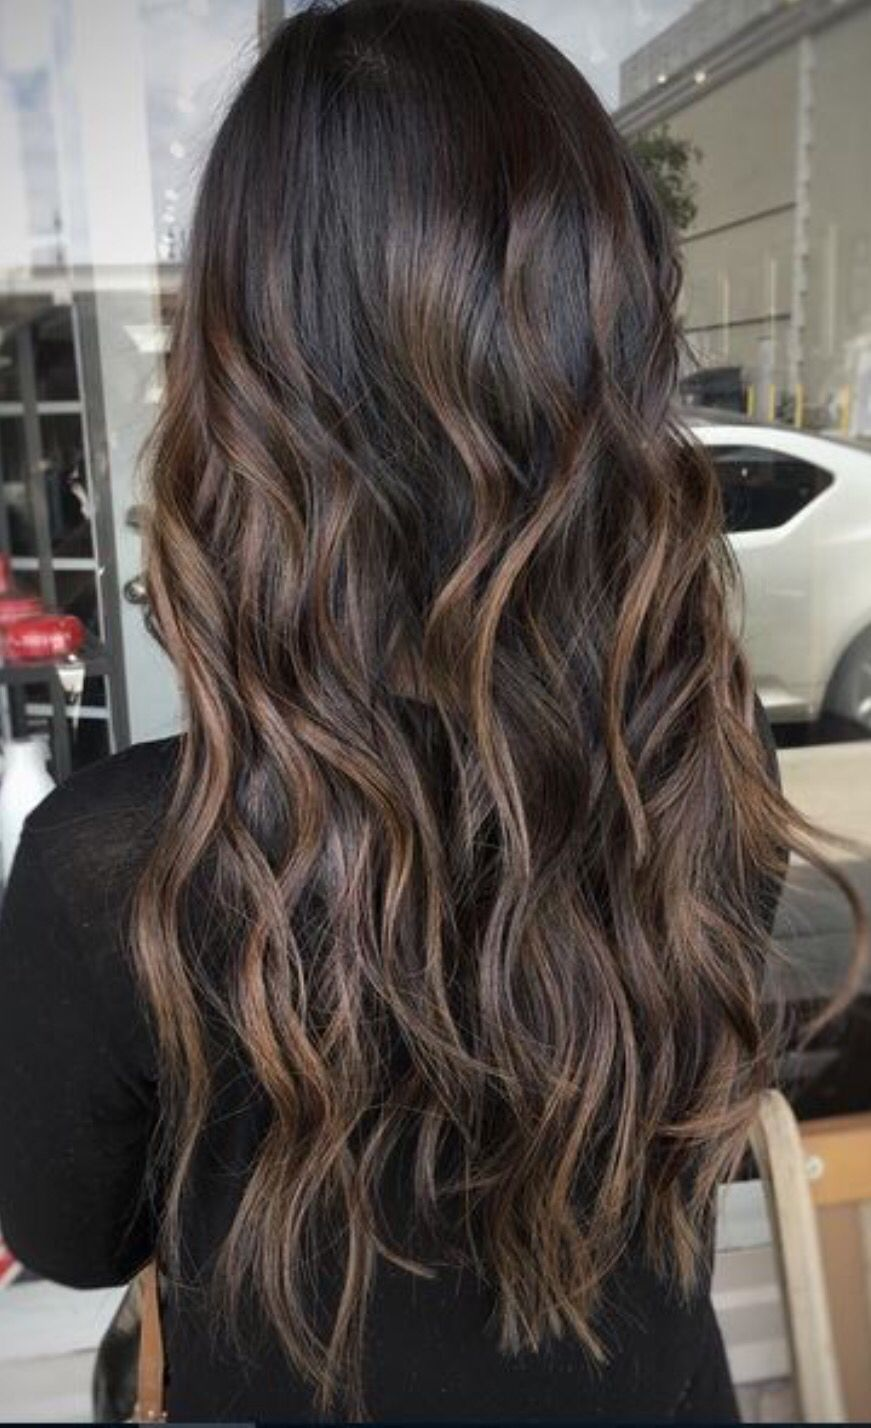 Pin by tess sowers on hair pinterest hair balayage hair and